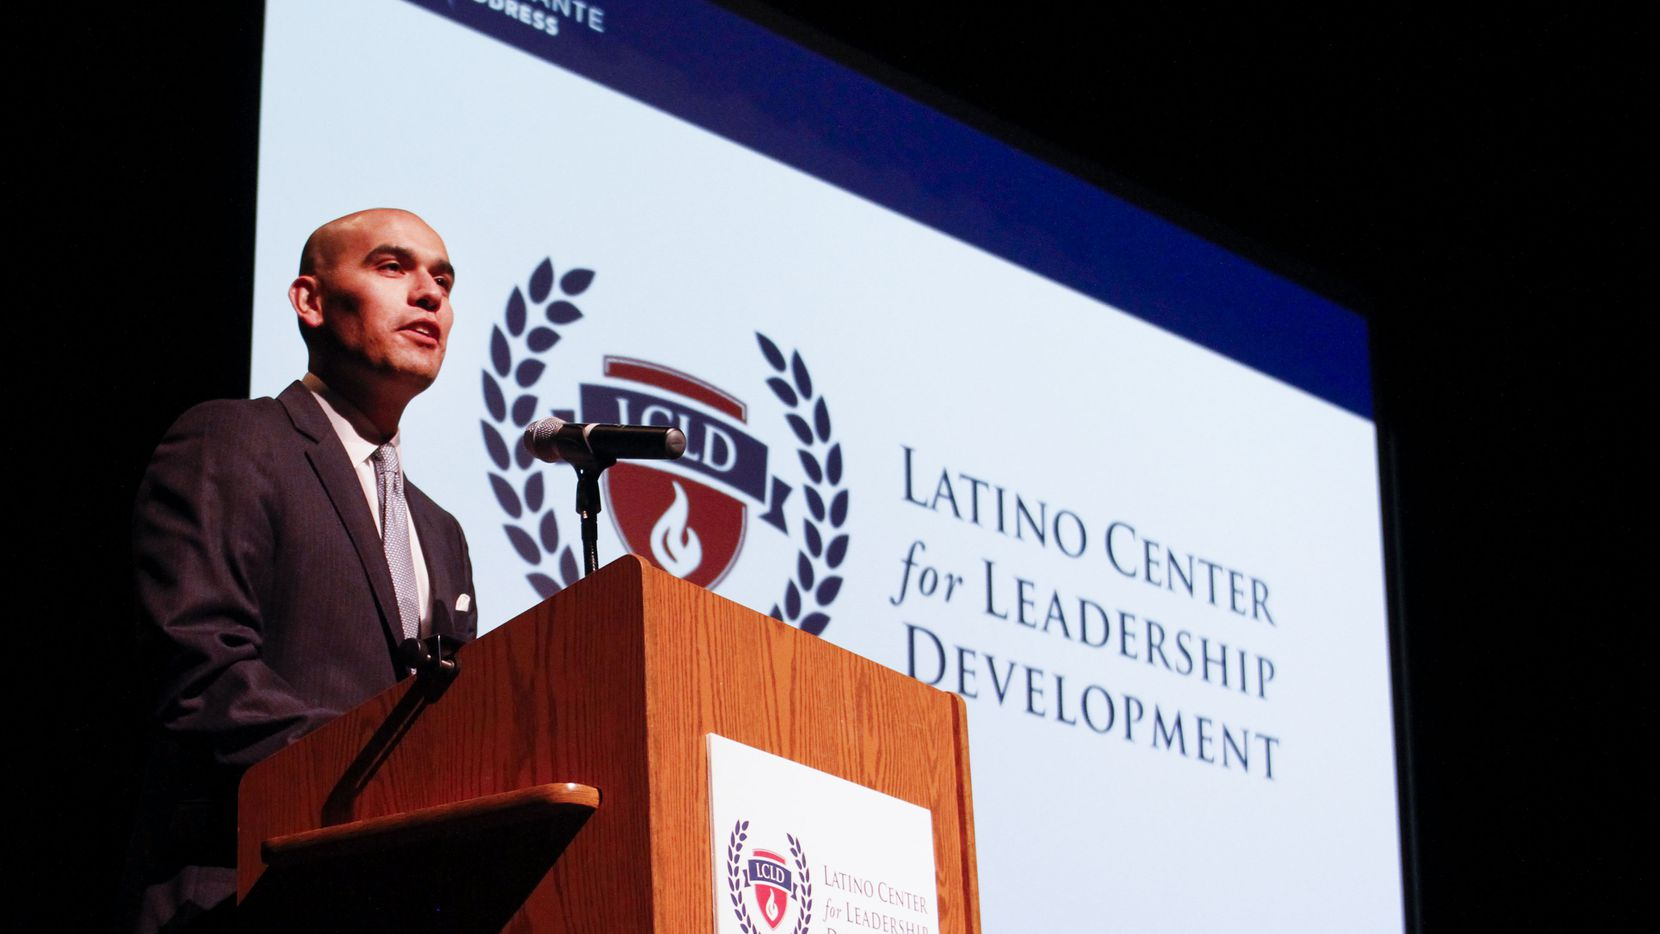 Latino Center for Leadership Development President Miguel Solis speaks to a crowd during the 2019 Adelante Address at the Latino Cultural Center in Dallas on Saturday, March 09, 2019.